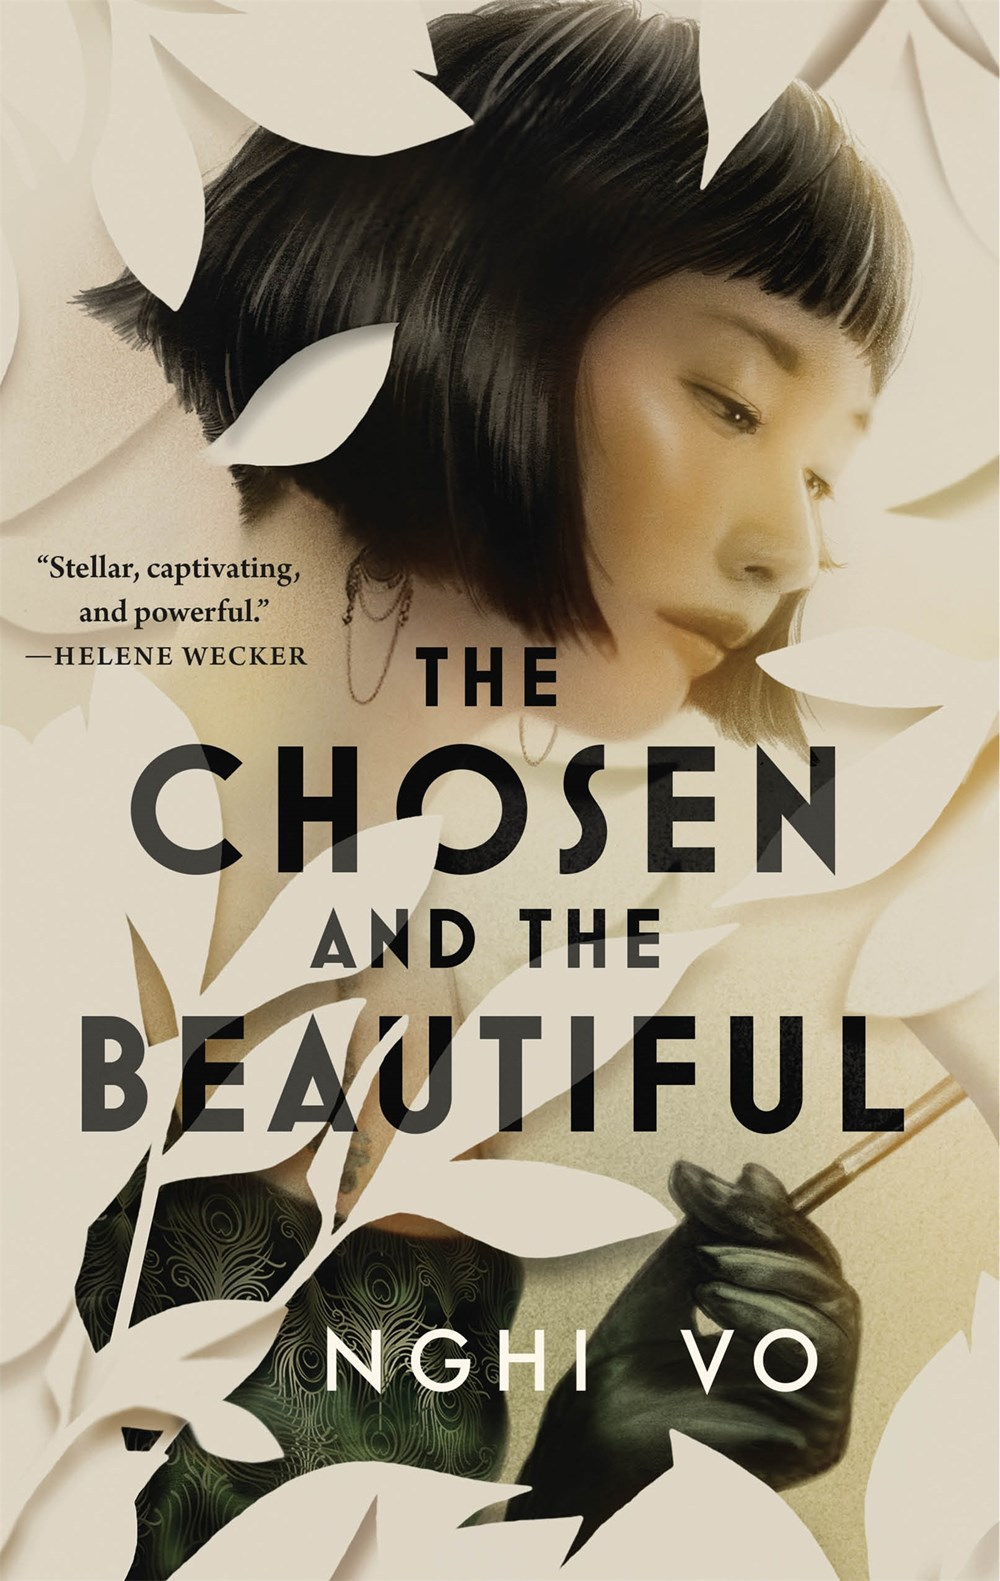 The Chosen and the Beautiful by Nghi Vo